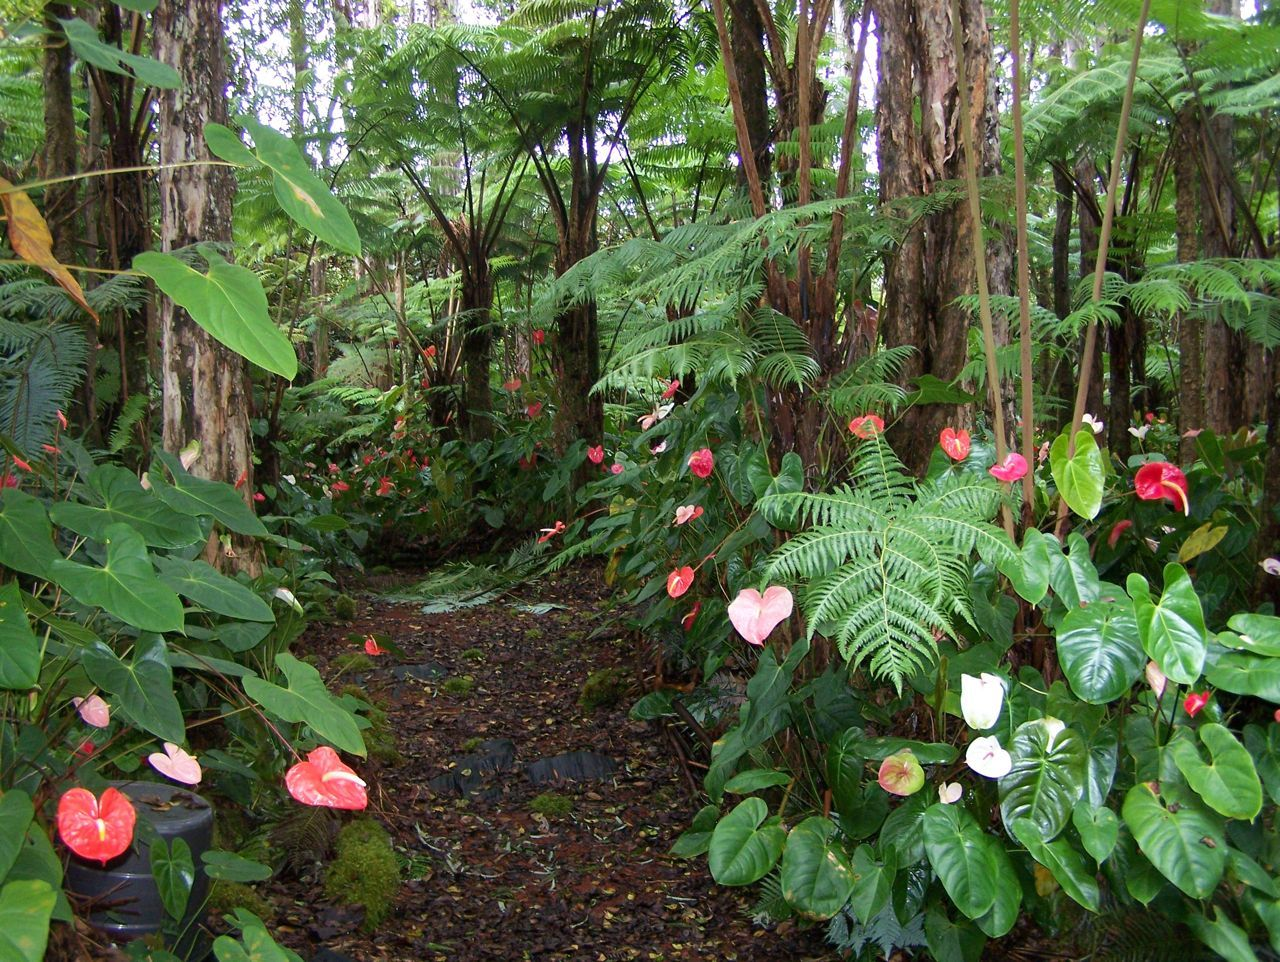 This Will Be The Look Of The Rainforest Garden When The Anthurium